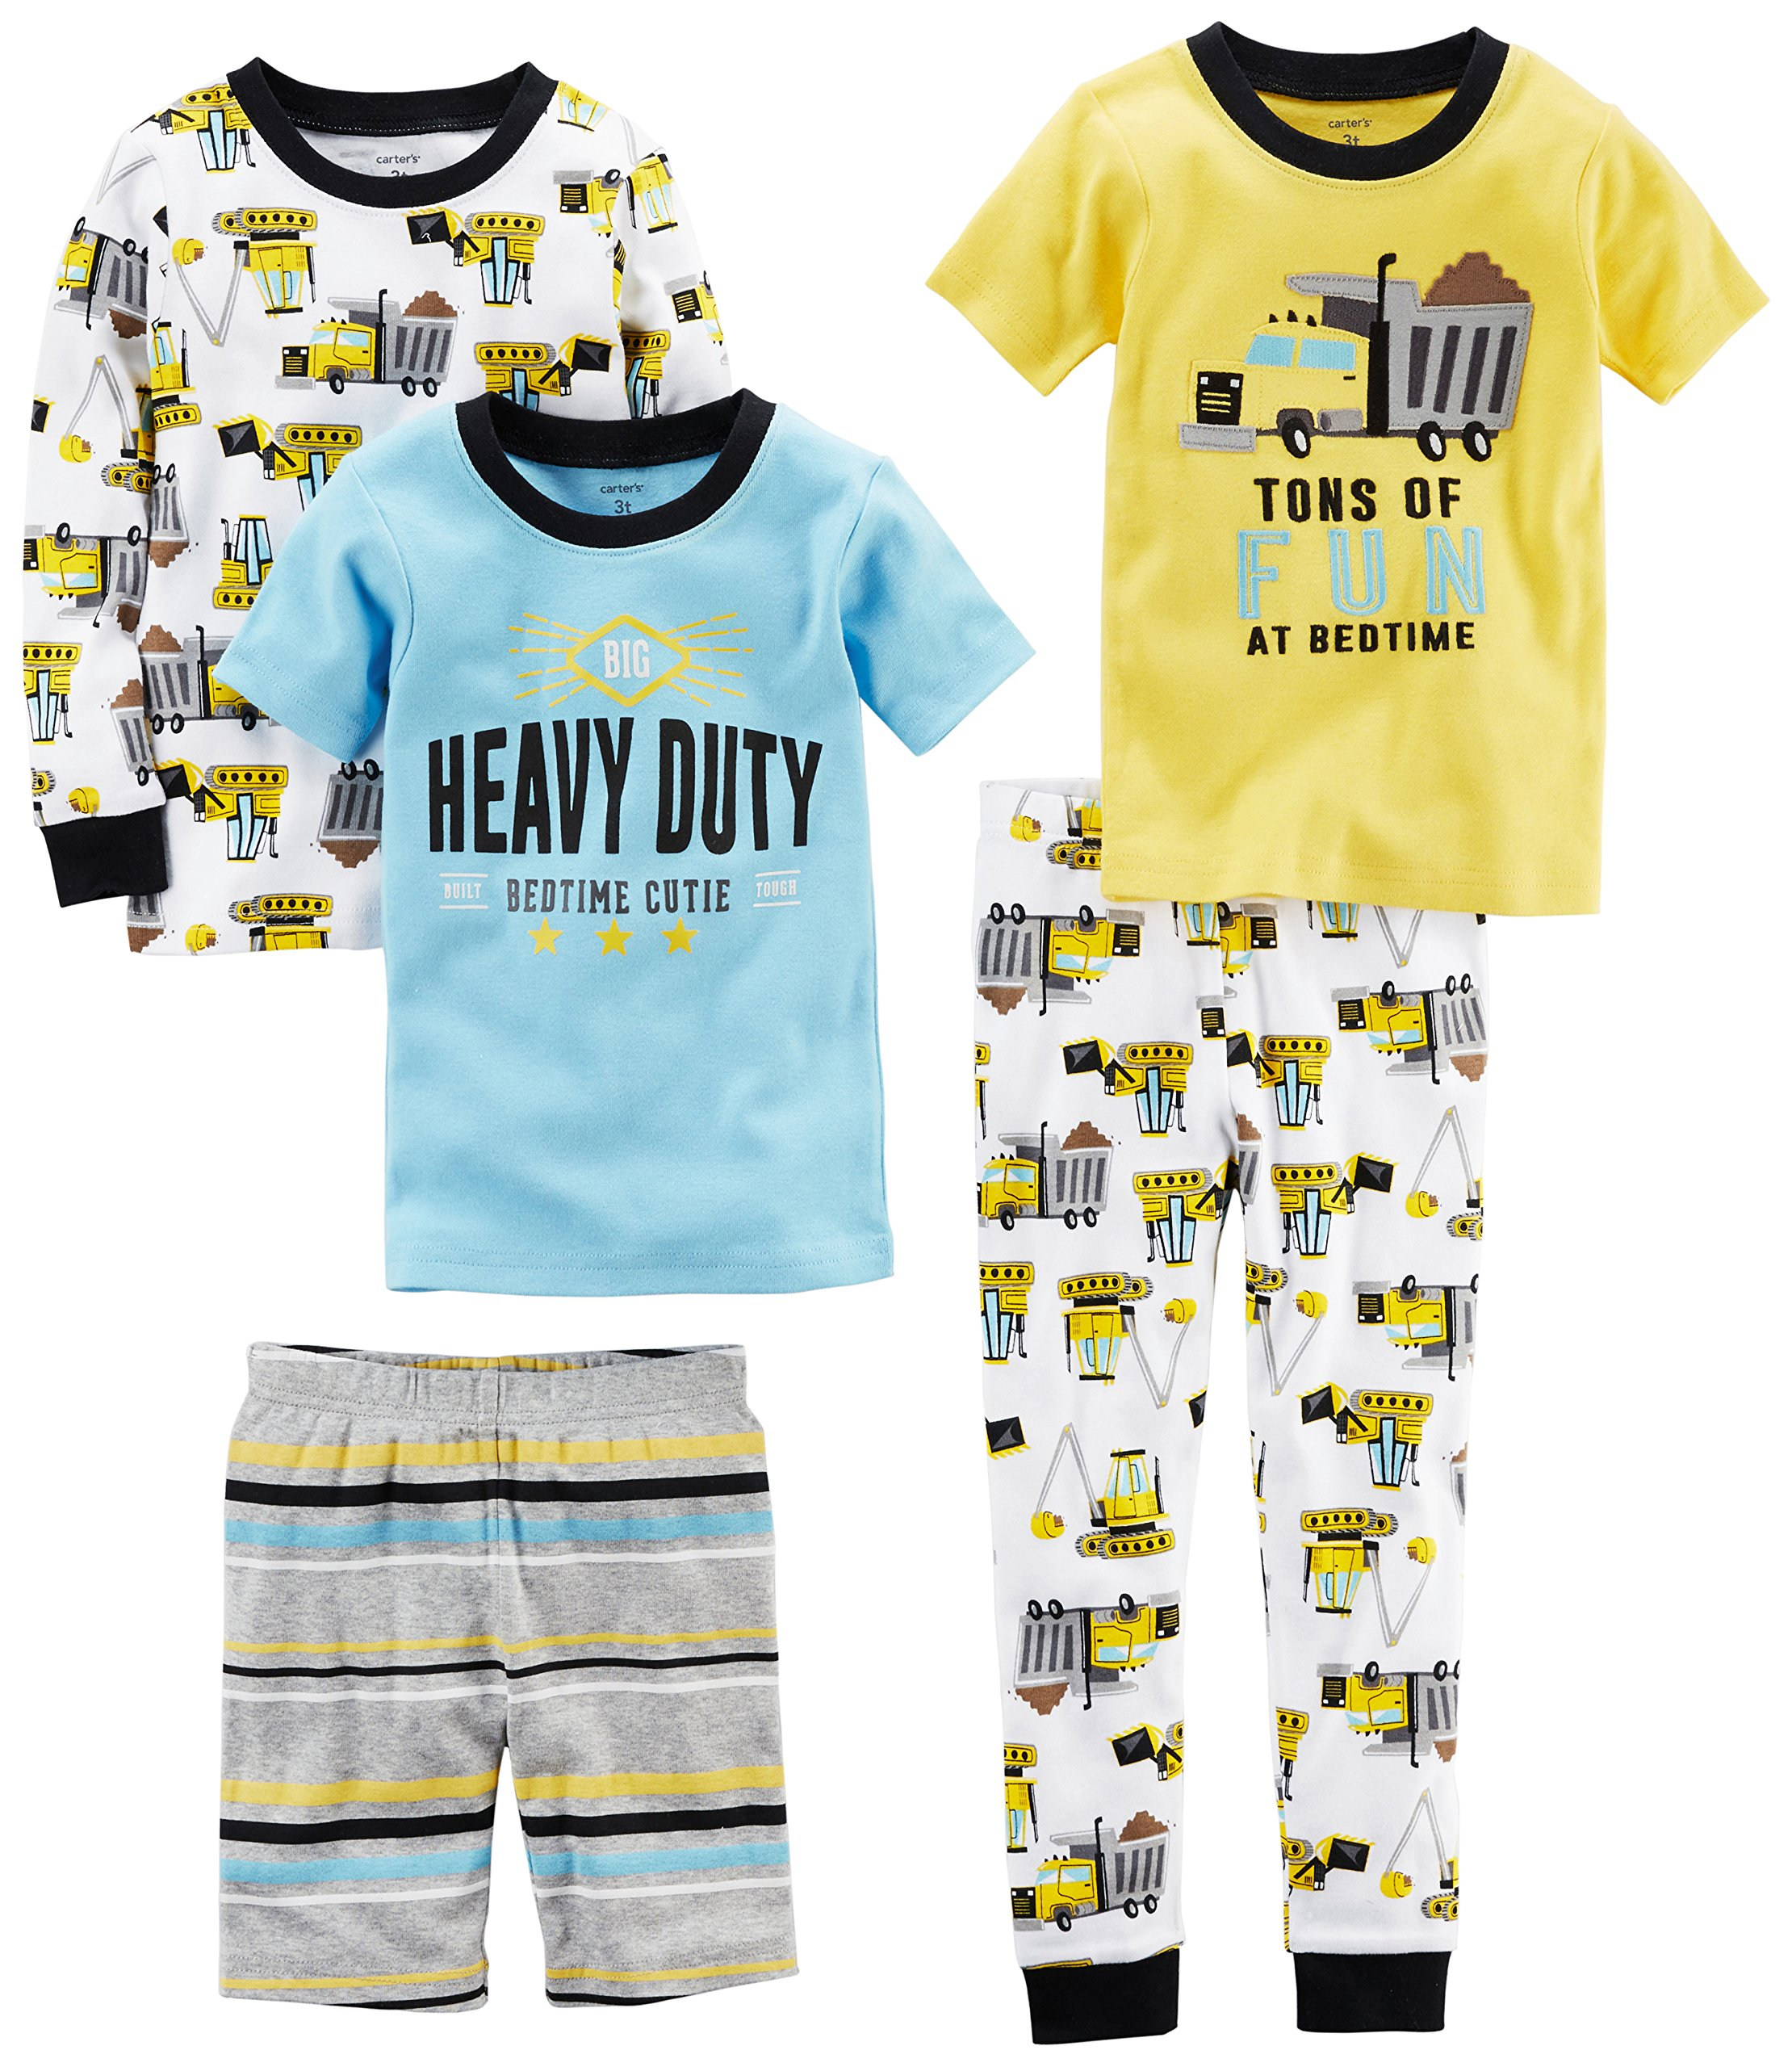 Carter's Boys' Toddler 5-Piece Cotton Snug-Fit Pajamas, Construction, 3T by Carter's (Image #1)